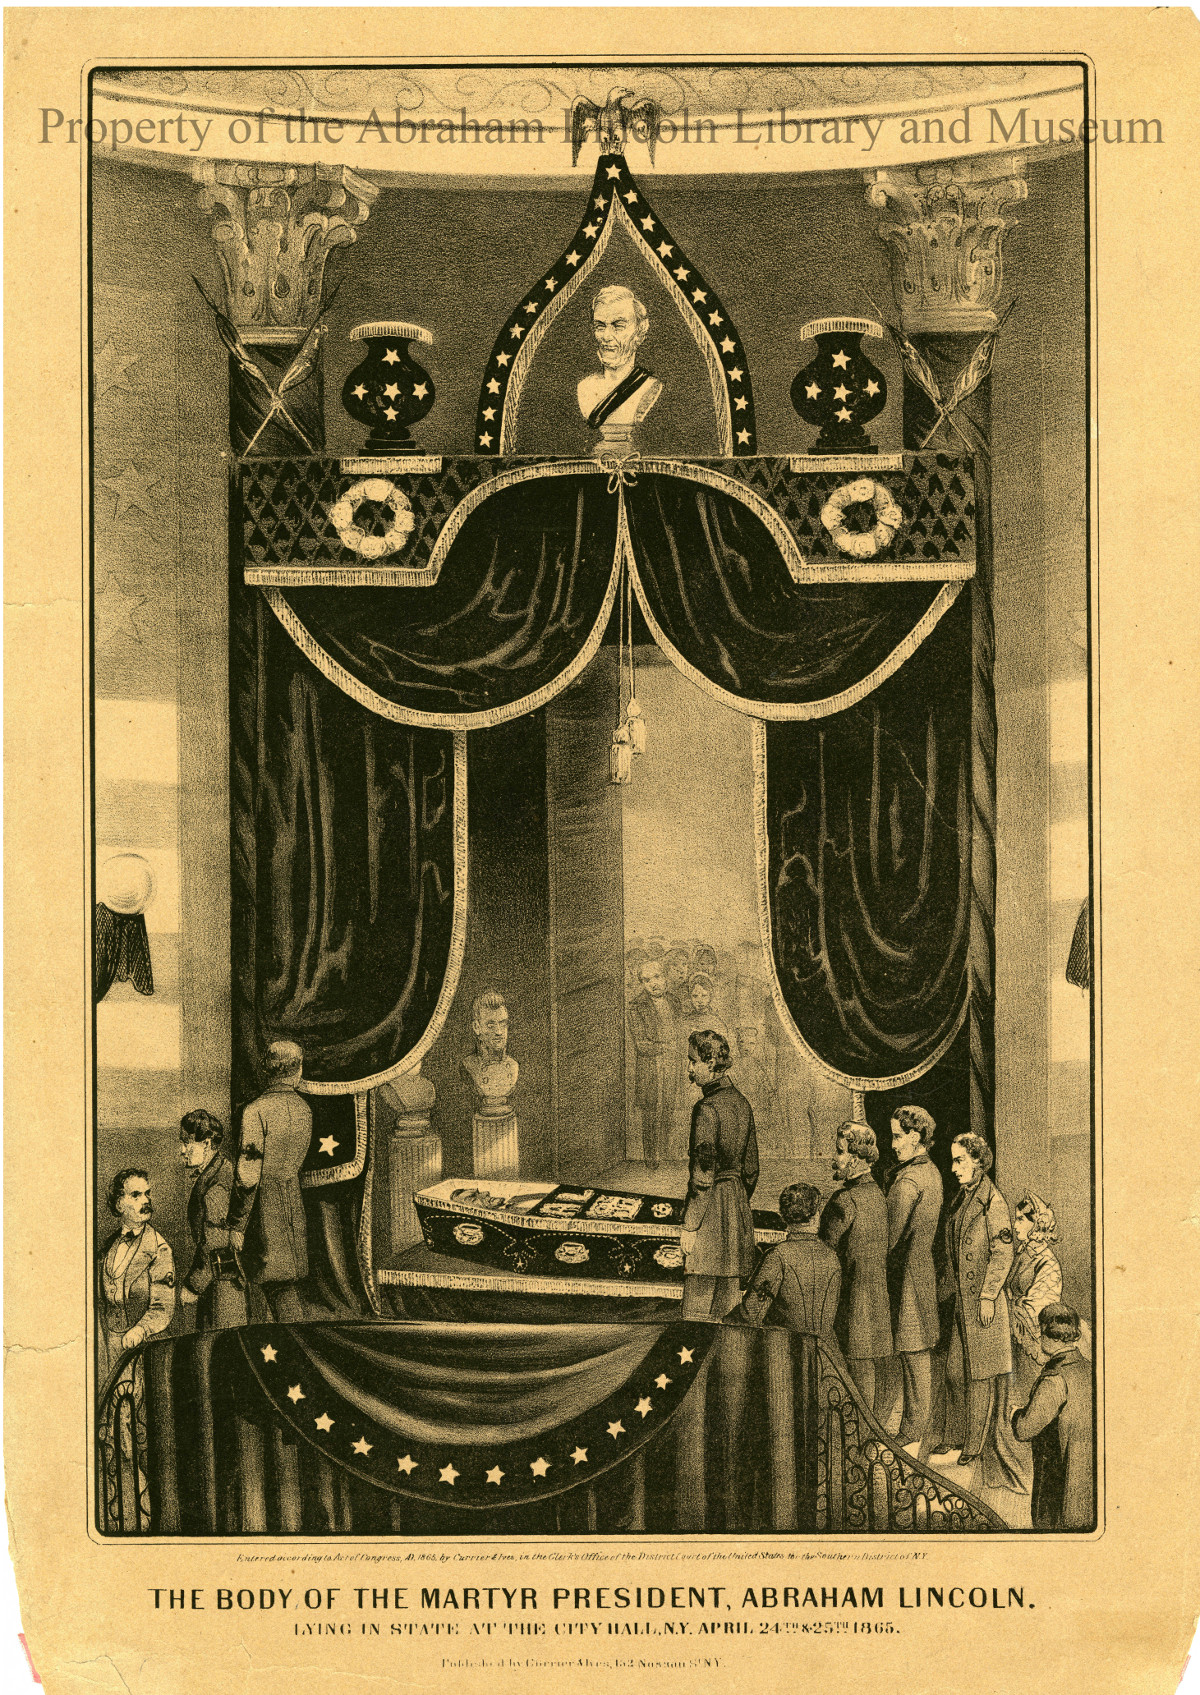 The Body of the Martyr President, Abraham Lincoln